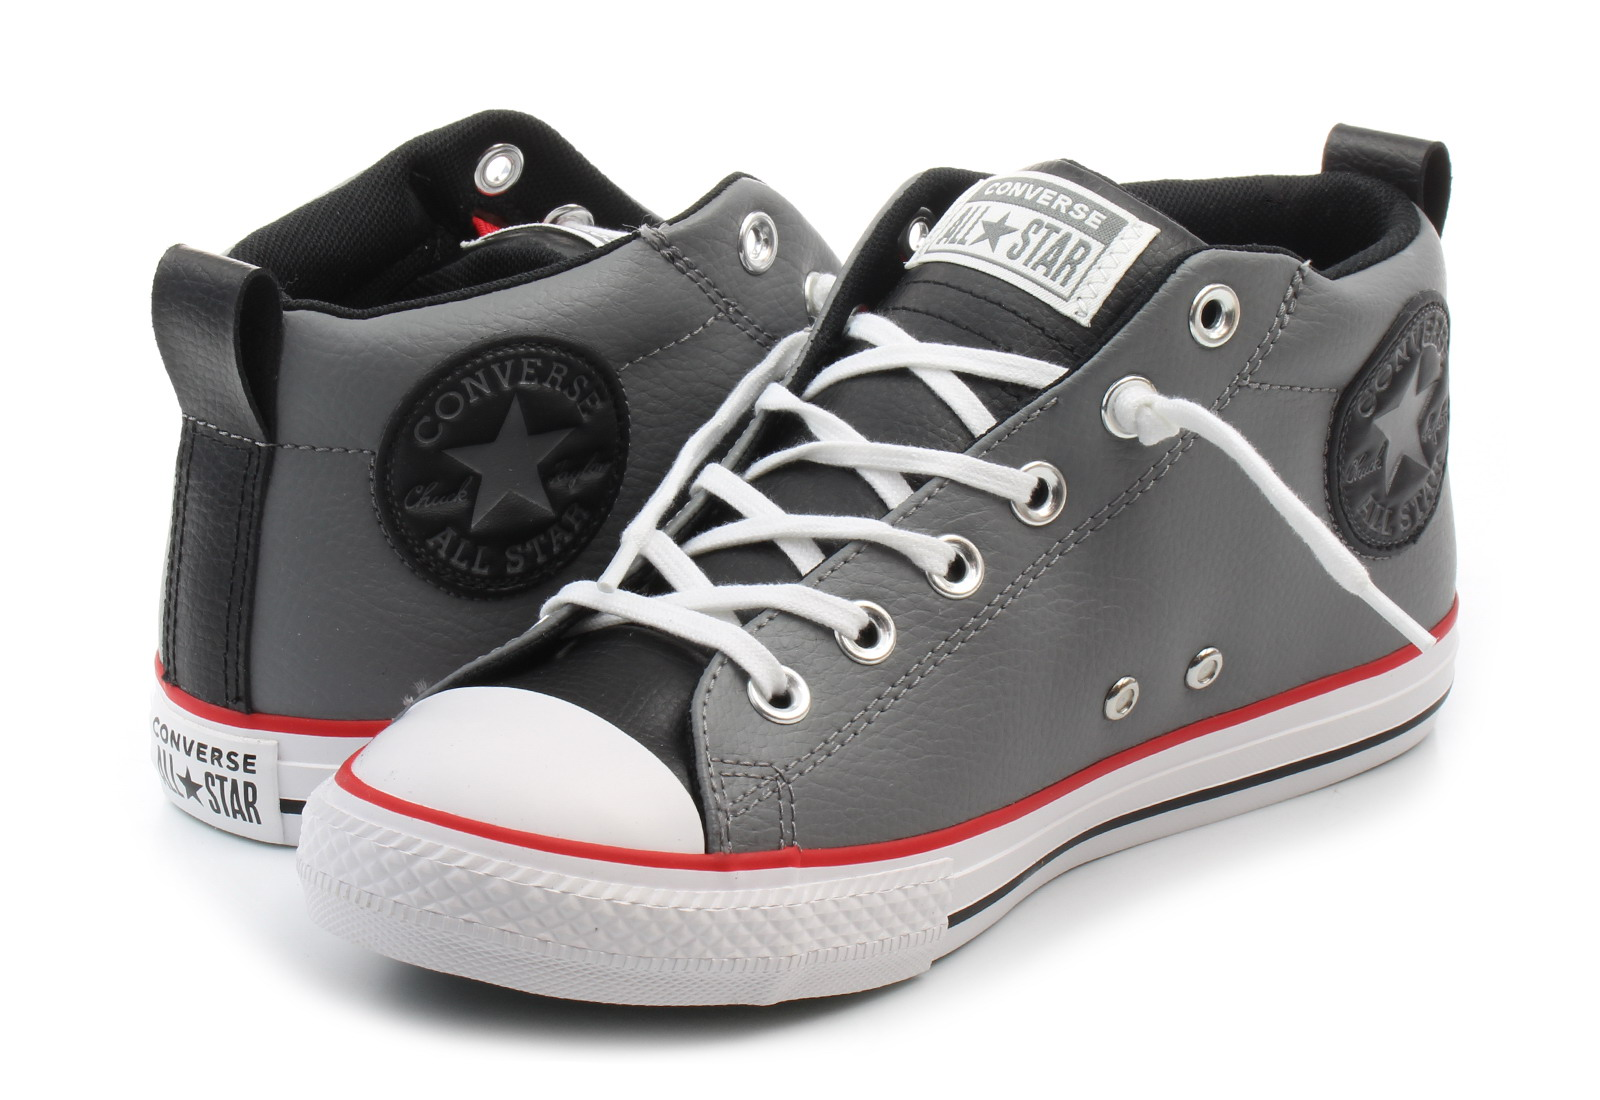 fe28e84785b5 Converse Sneakers - Chuck Taylor All Star Street Mid - 661888C ...